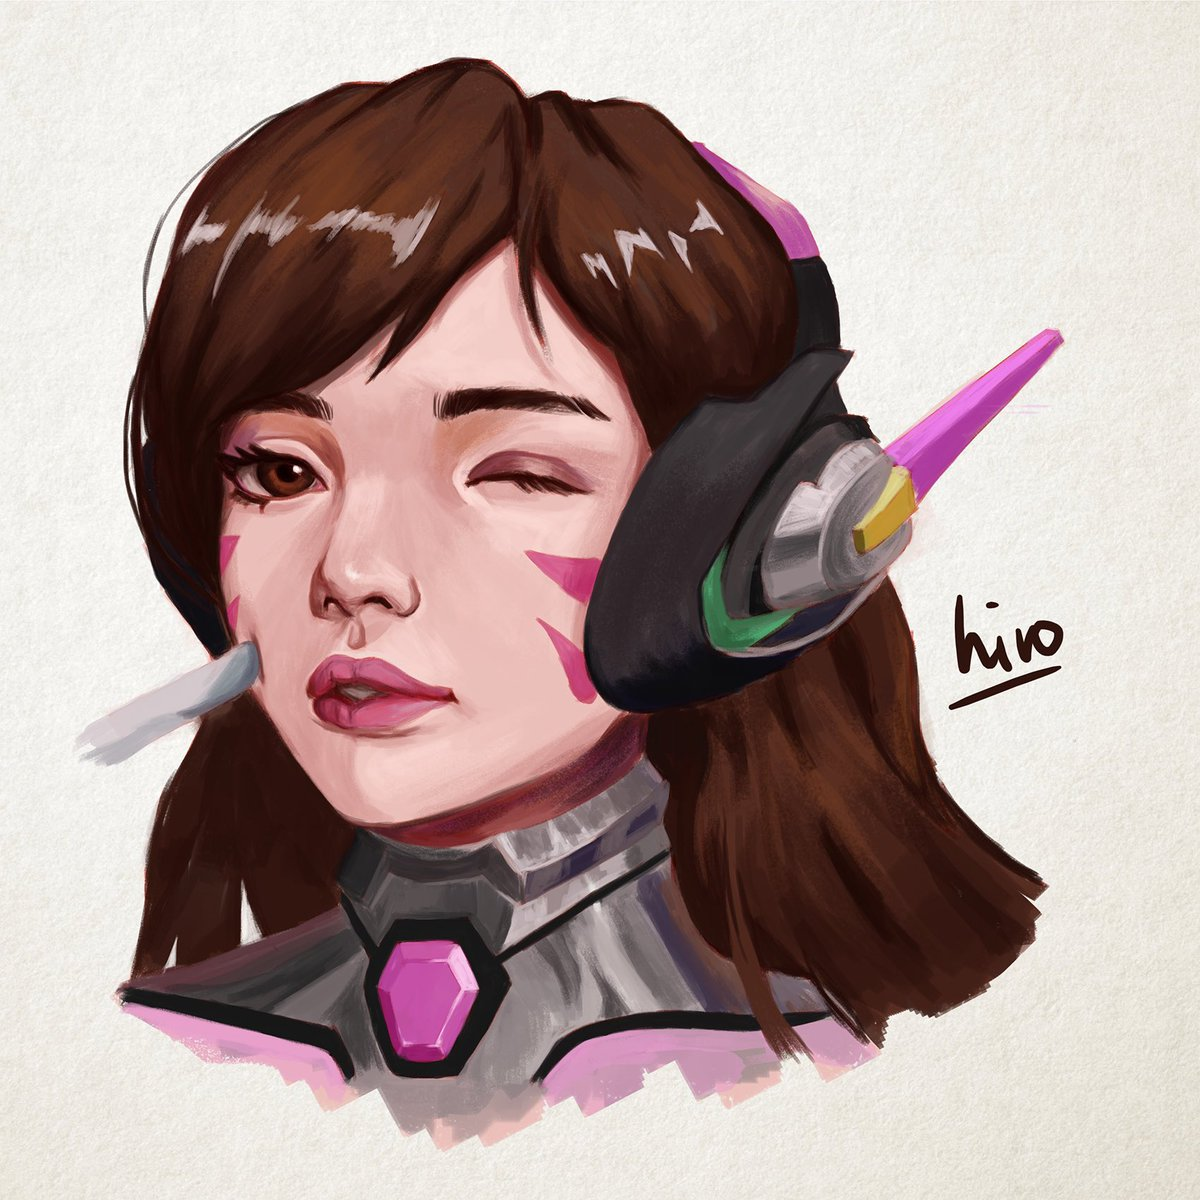 Decided to pick up digital painting again... • • • • • #Art #drawing #sketch #illustration #painting #digitalart #artist #portrait #instaart #dailysketch #digitalpainting #fanart #Dva #Dvaoverwatch #overwatch #overwatchart